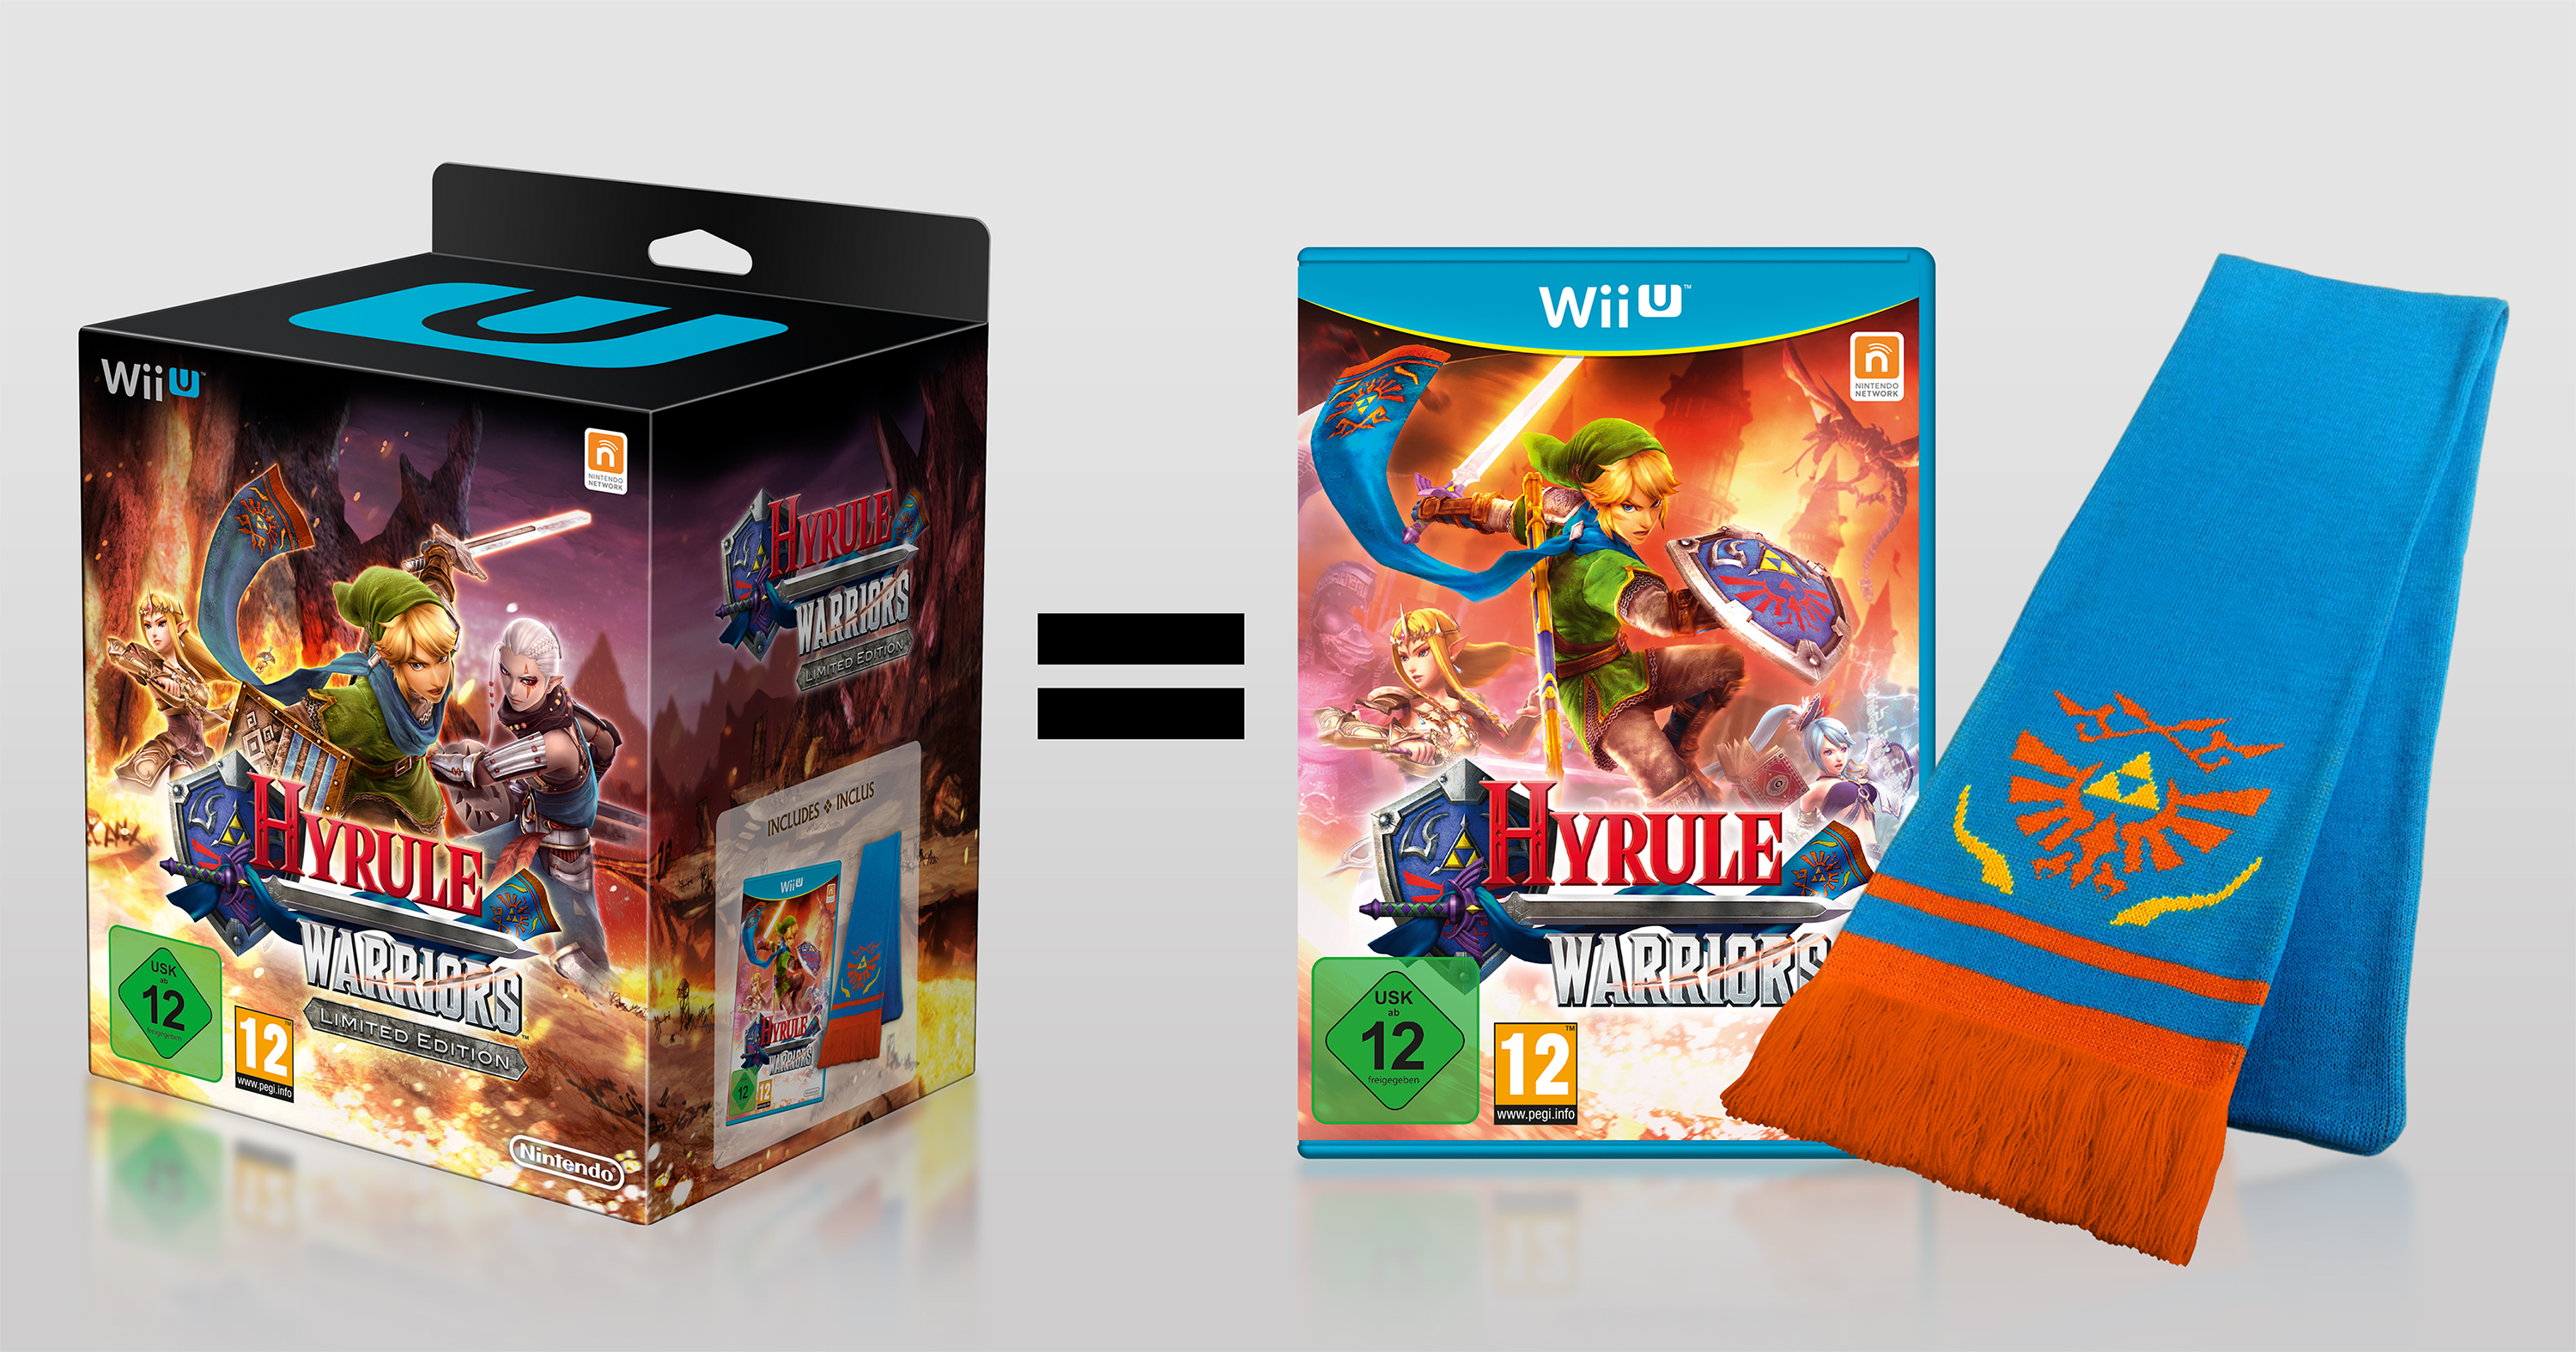 special-edition-hyrule-warriors-content